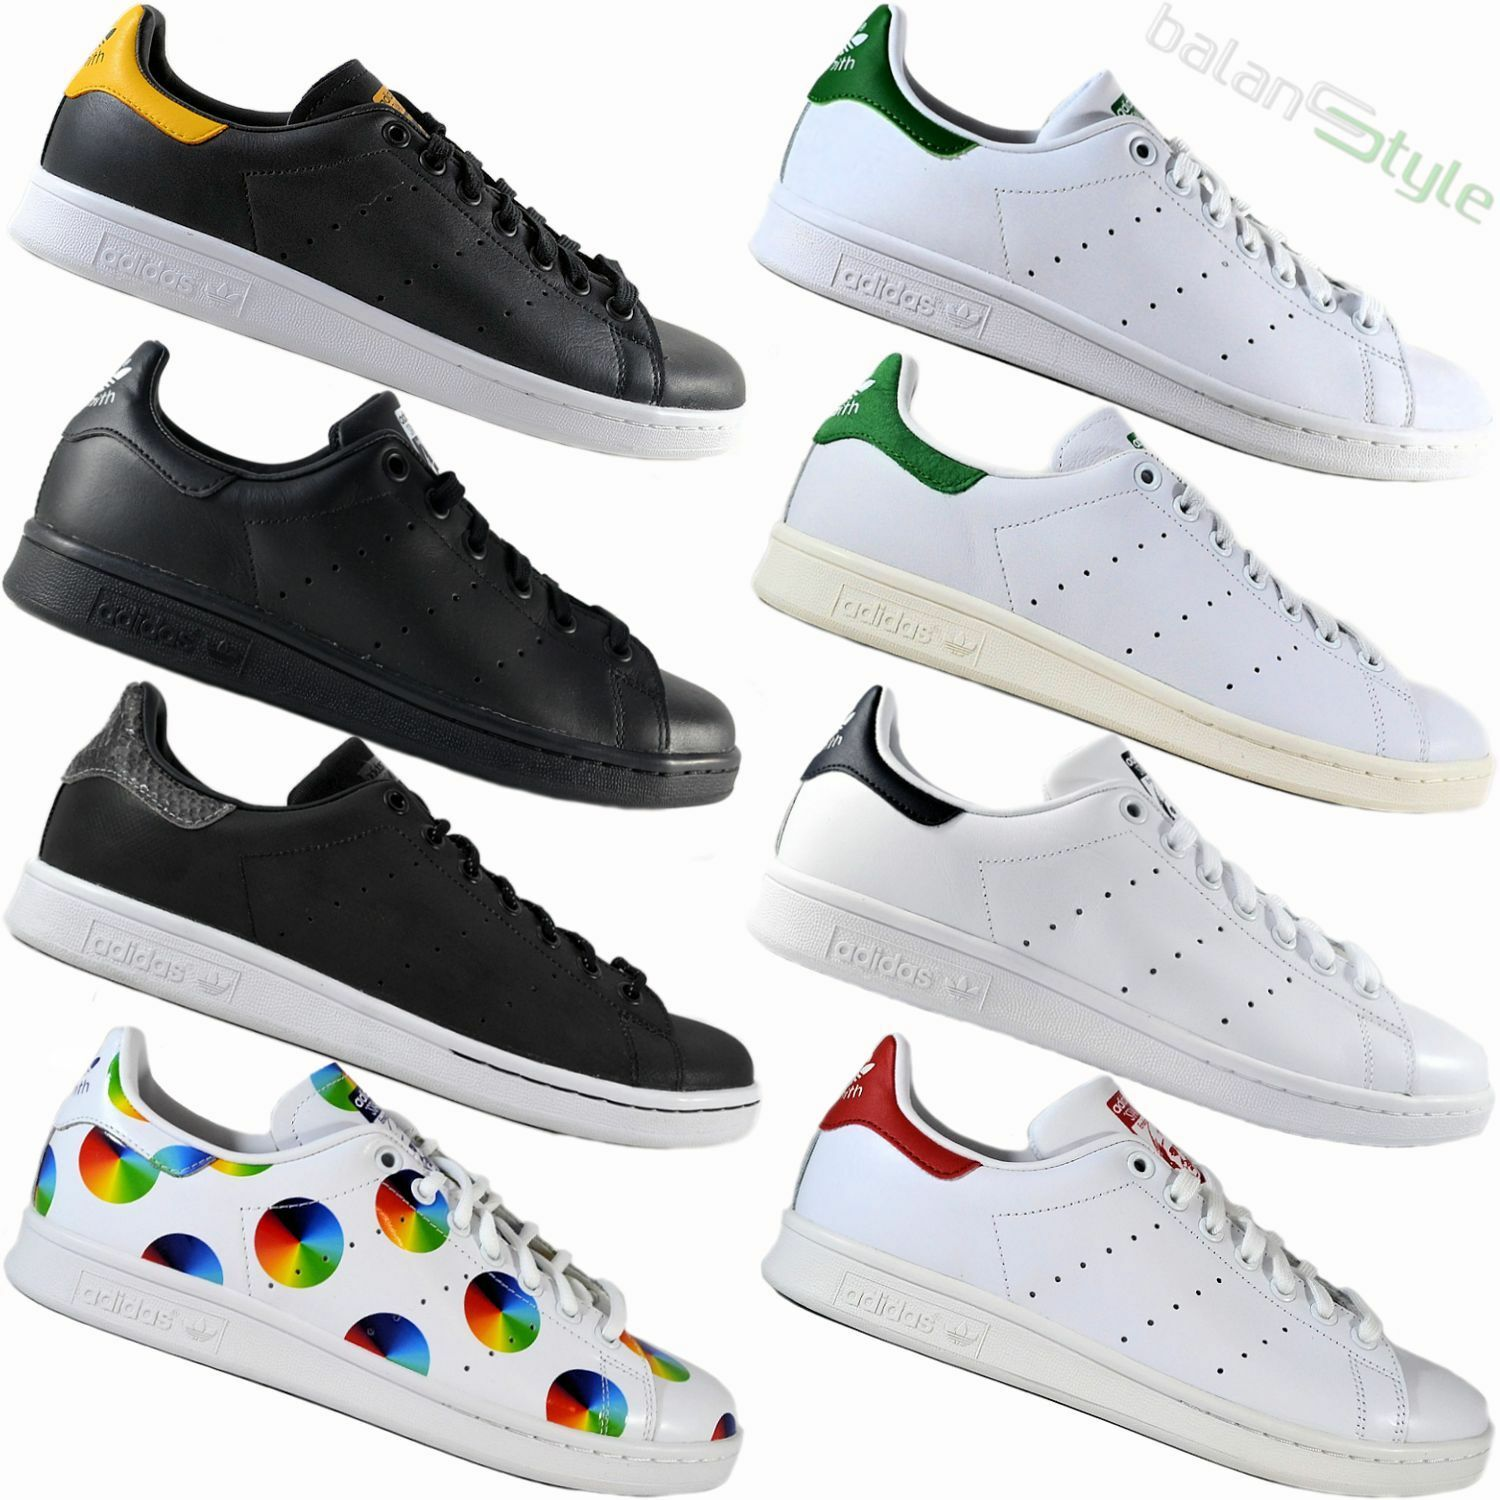 NUEVA ADIDAS ORIGINALS STAN SMITH m17919; d67361; M20324 blanco - blanco M20324 o / Negro 4b993a